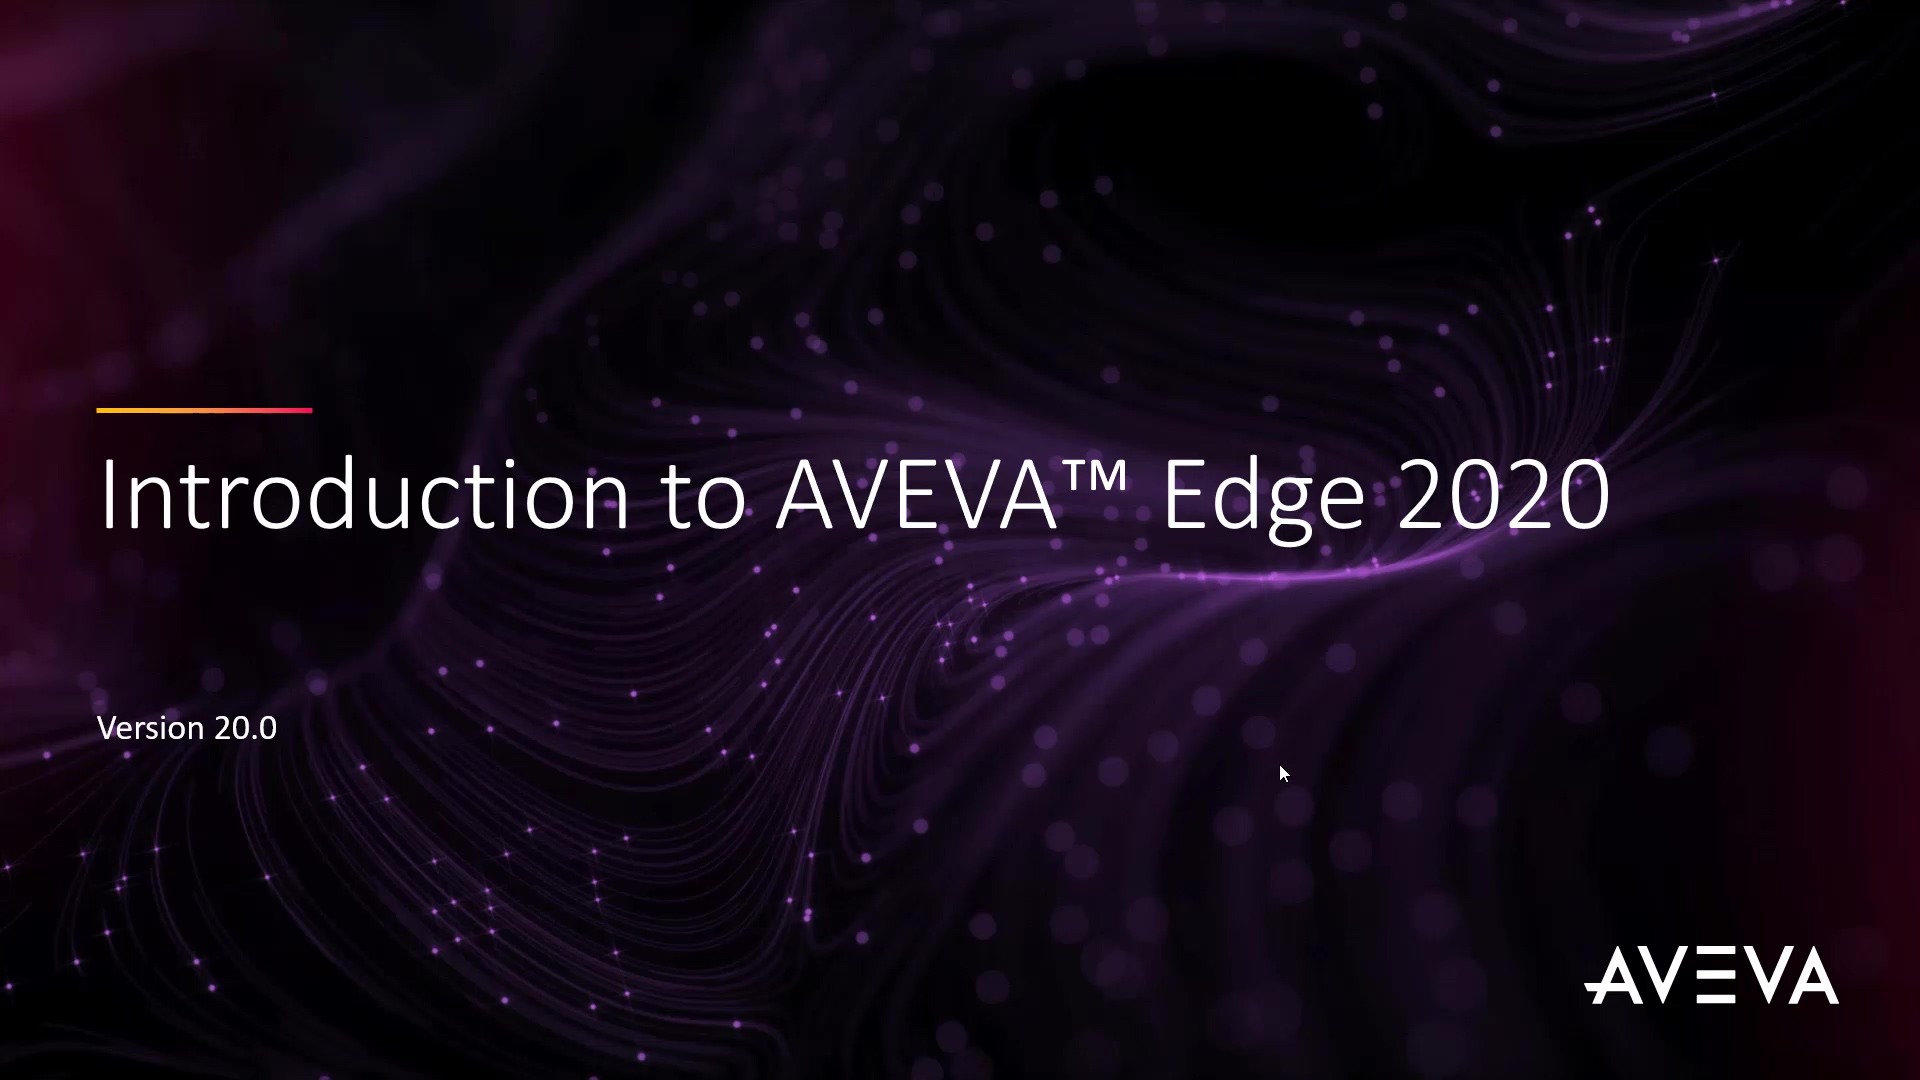 Video_AVEVA Edge 2020 Introduction_07-20